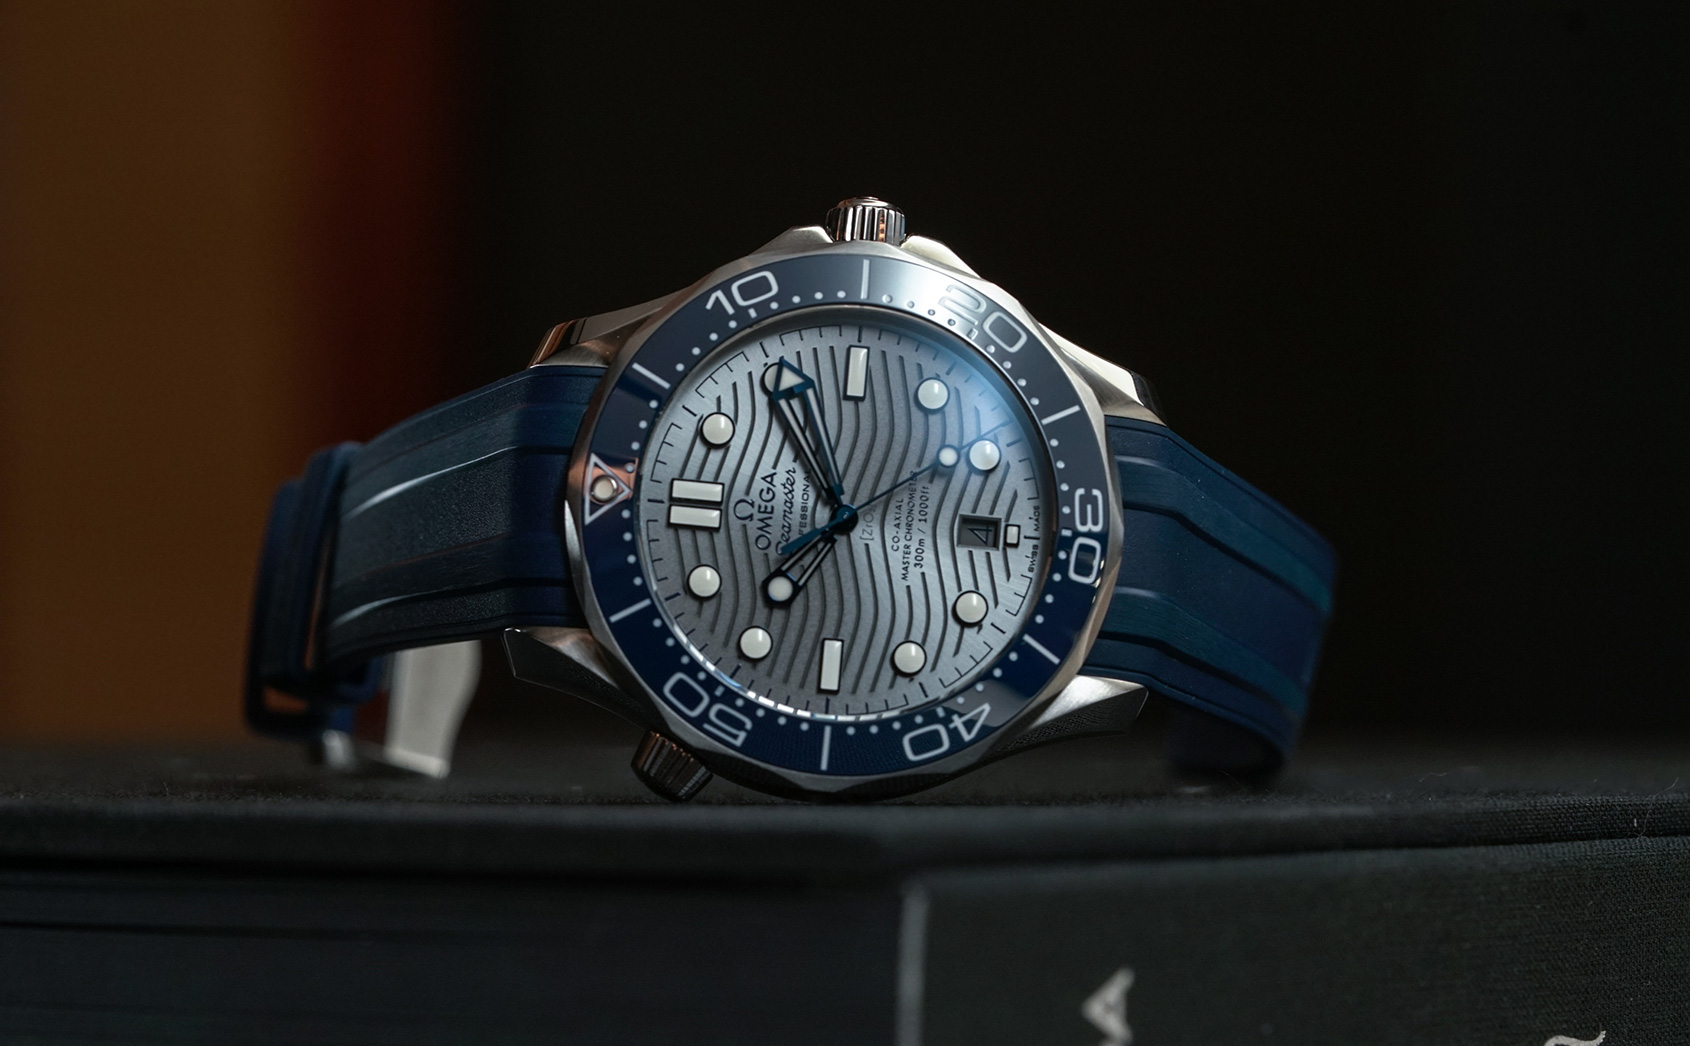 Why is the Omega Seamaster Professional 300M such a good daily wear?